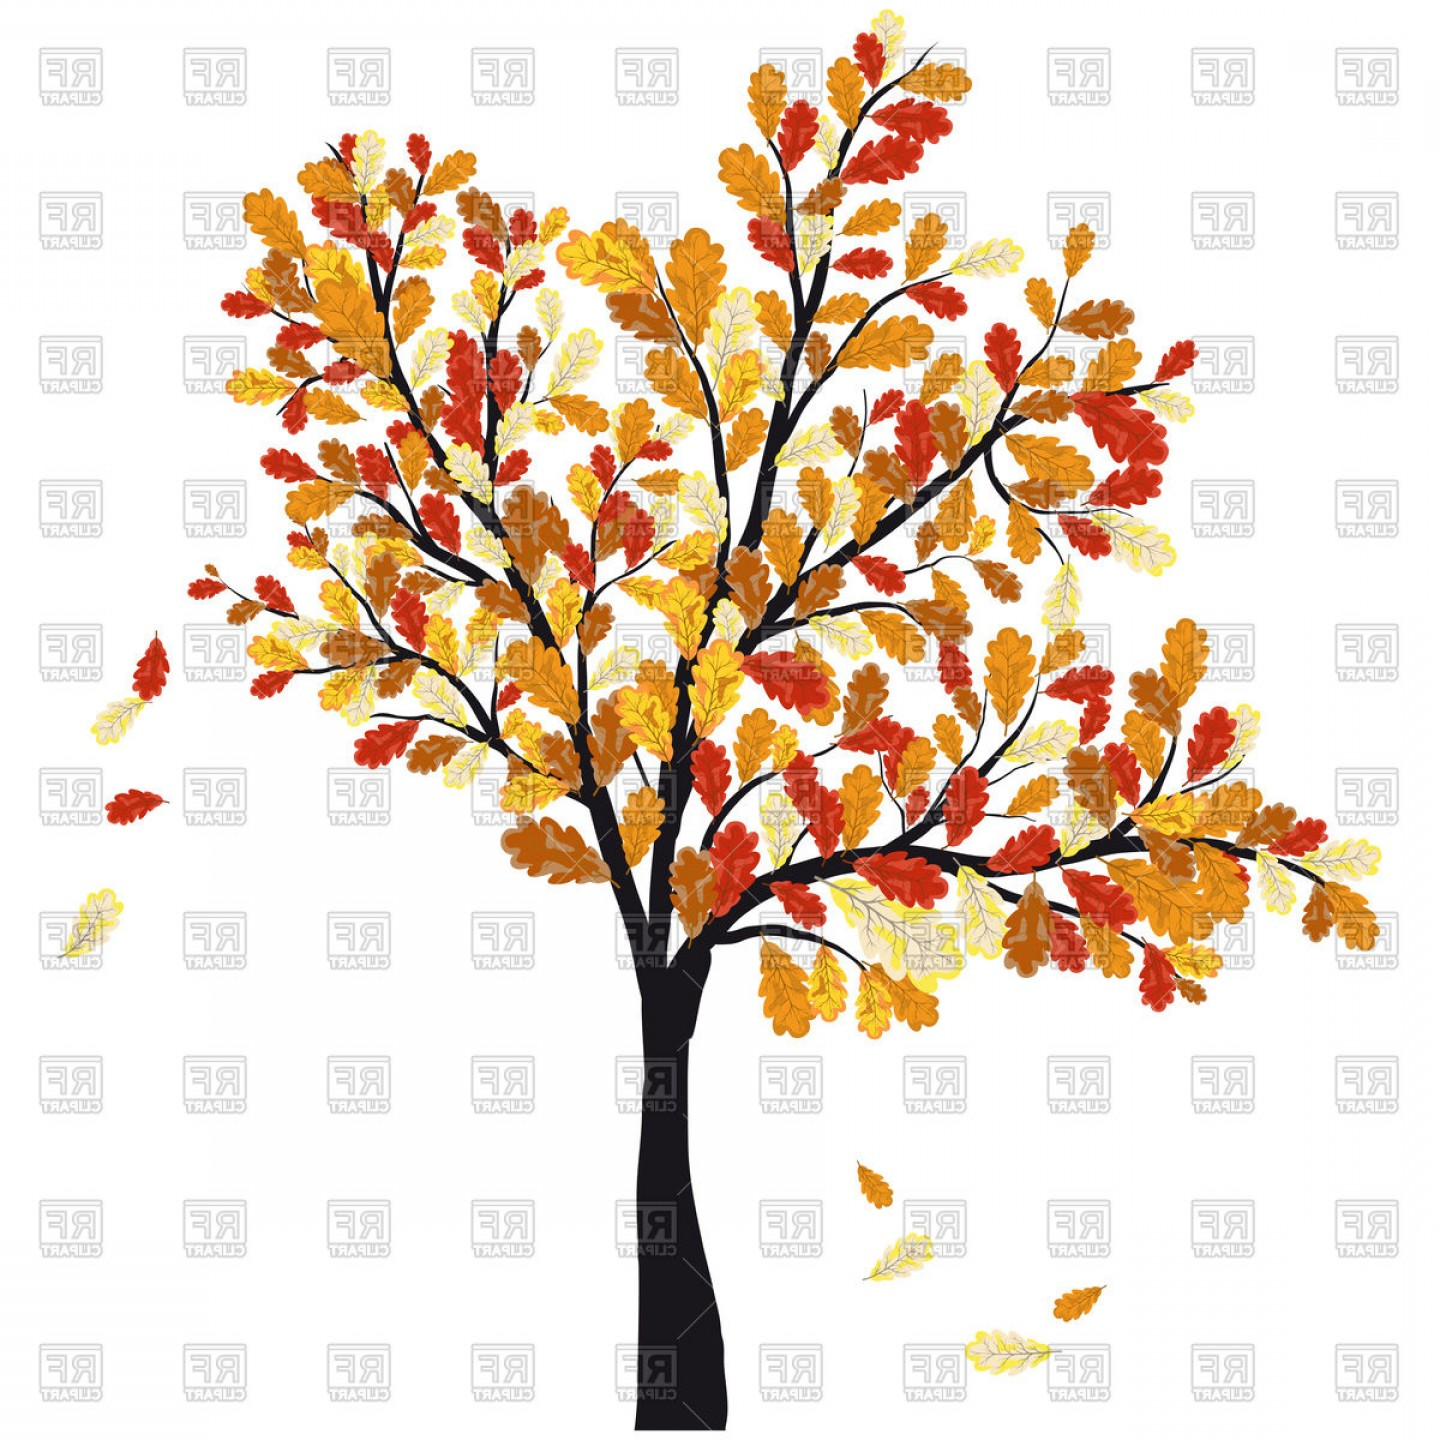 Oak Leaf Vector Clip Art: Autumn Oak Tree With Falling Leaves Vector Clipart